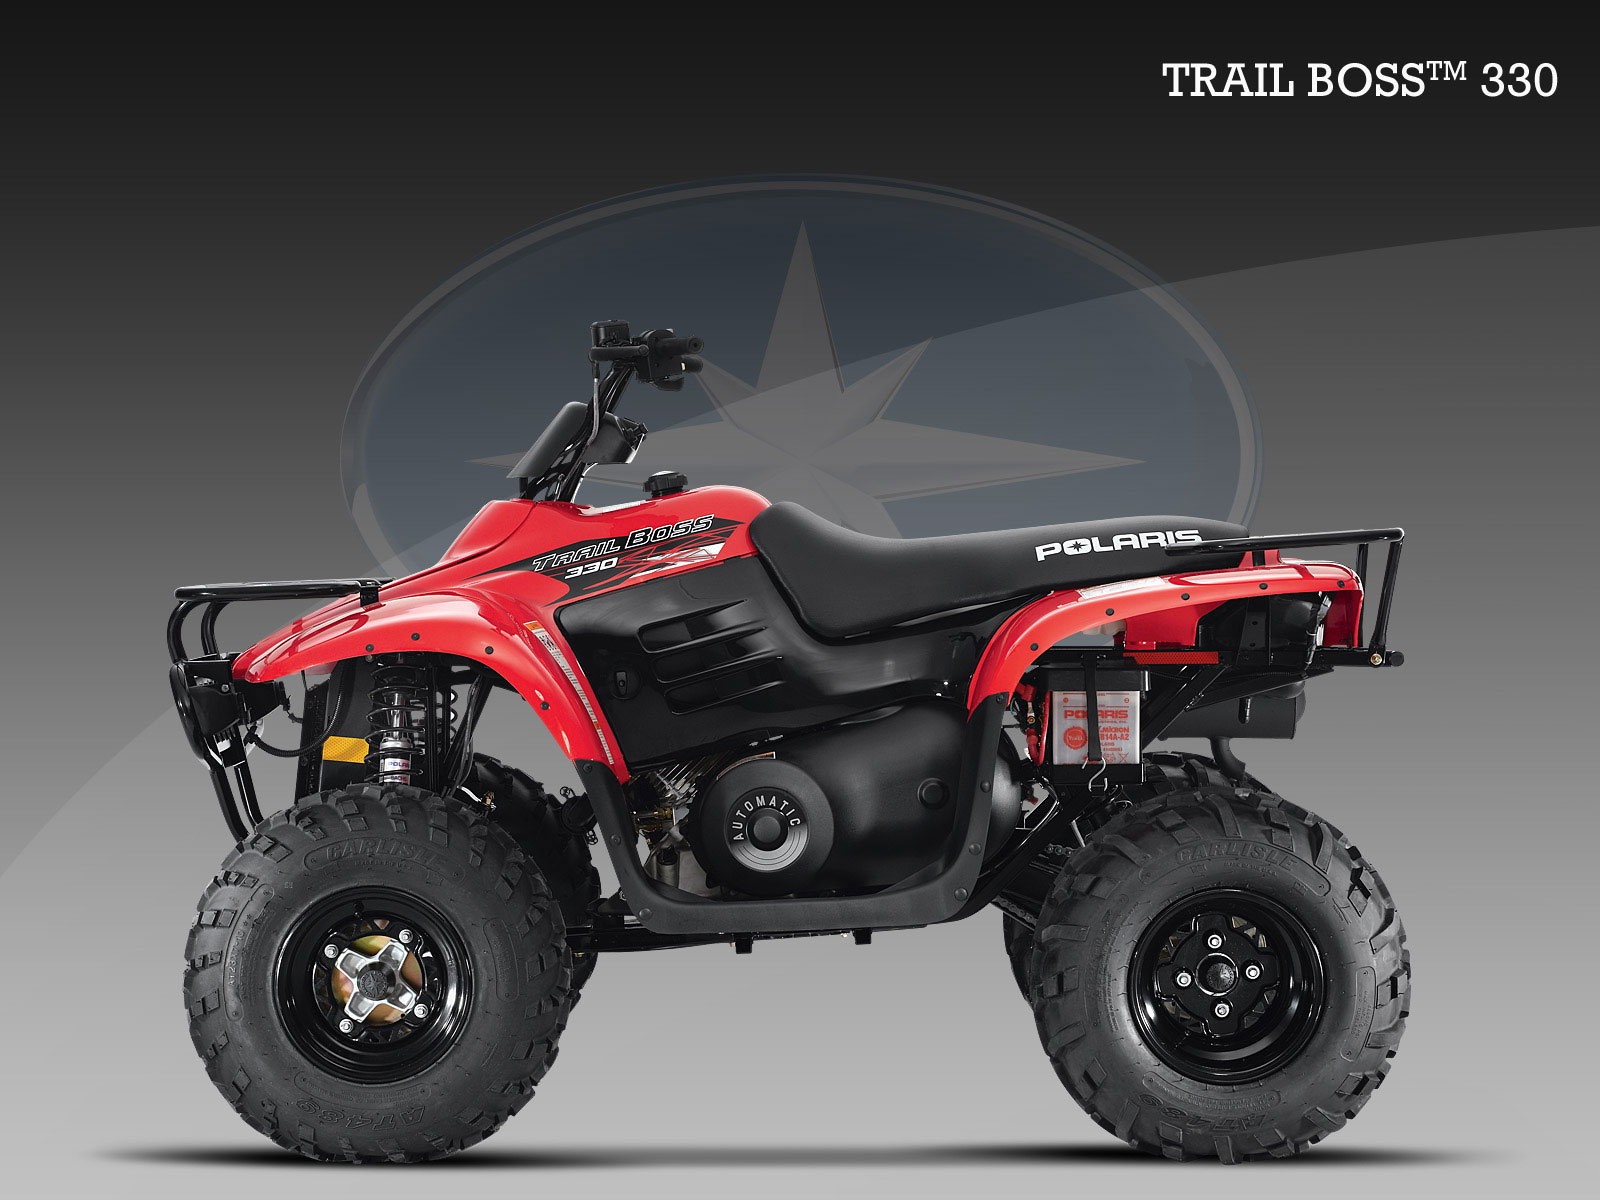 Polaris Trail Boss 330 2006 images #174309